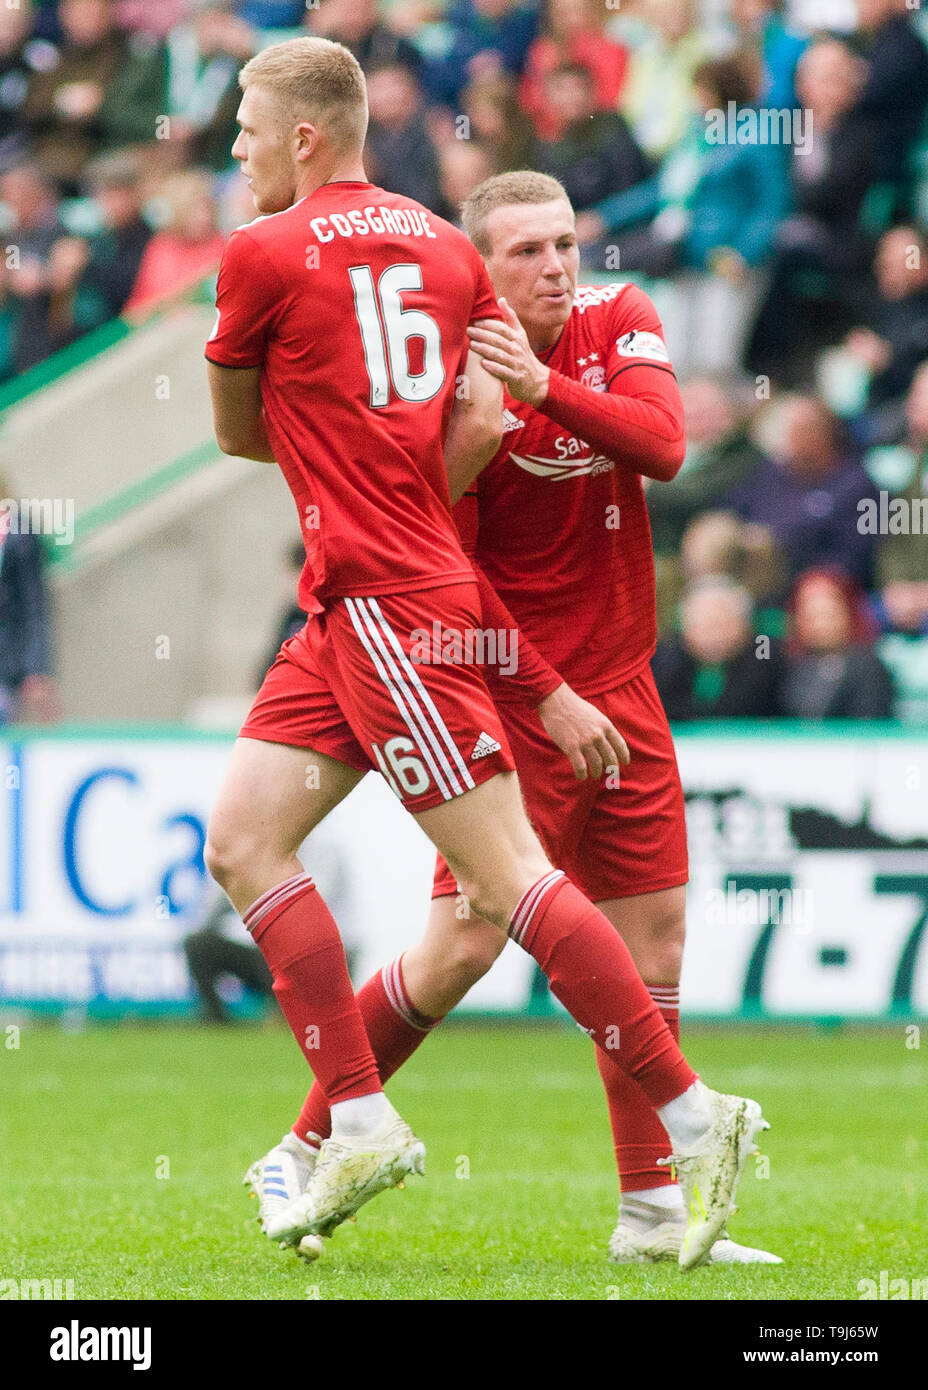 Edinburgh, Scotland, UK. 19th May 2019. Sam Cosgrove of Aberdeen  celebrates scoring his team's first goal during the Ladbrokes Premiership match between Hibernian and Aberdeen at Easter Road on May 19 2019 in Edinbugh, UK. Editorial use only, licence required for commercial use. No use in Betting, games or a single club/league/player publication. Credit: Scottish Borders Media/Alamy Live News Stock Photo